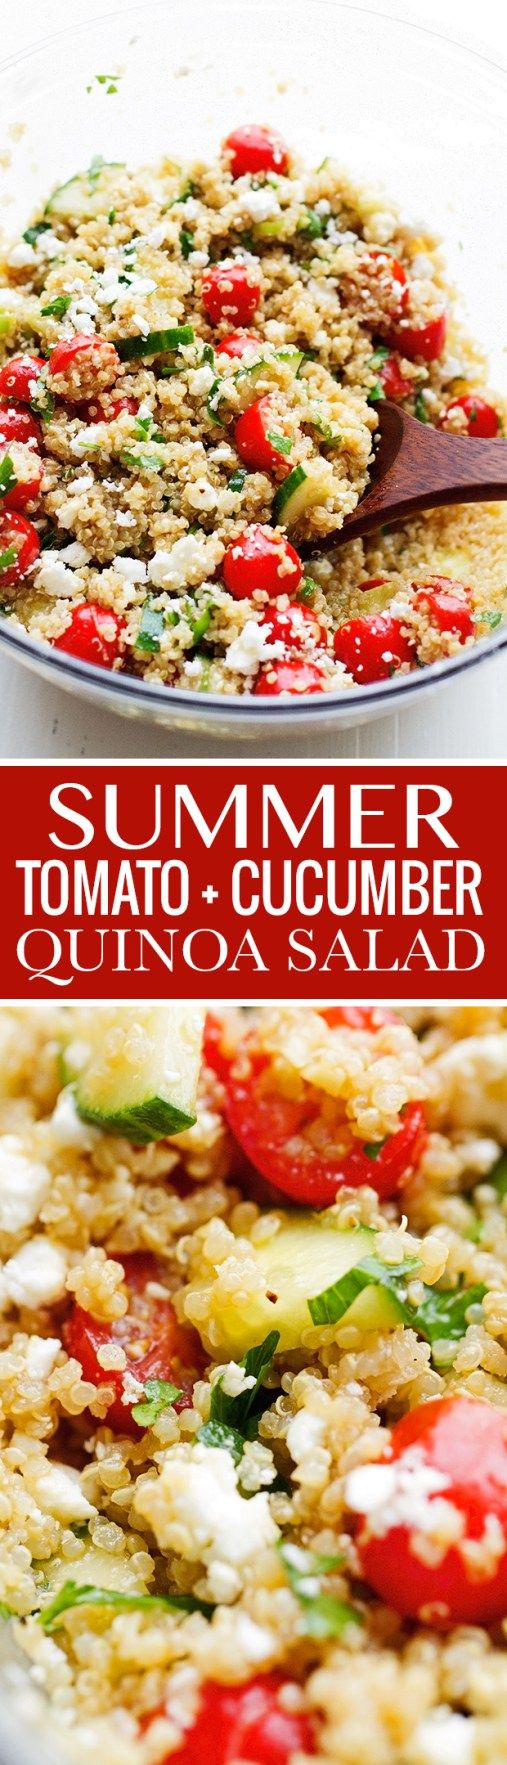 Summer Tomato and Cucumber Quinoa Salad - perfect for when you have leftover quinoa! #vegetarian #quinoasalad #cucumbersalad #tomatosalad #tabbouleh | Littlespicejar.com @LittleSpiceJar